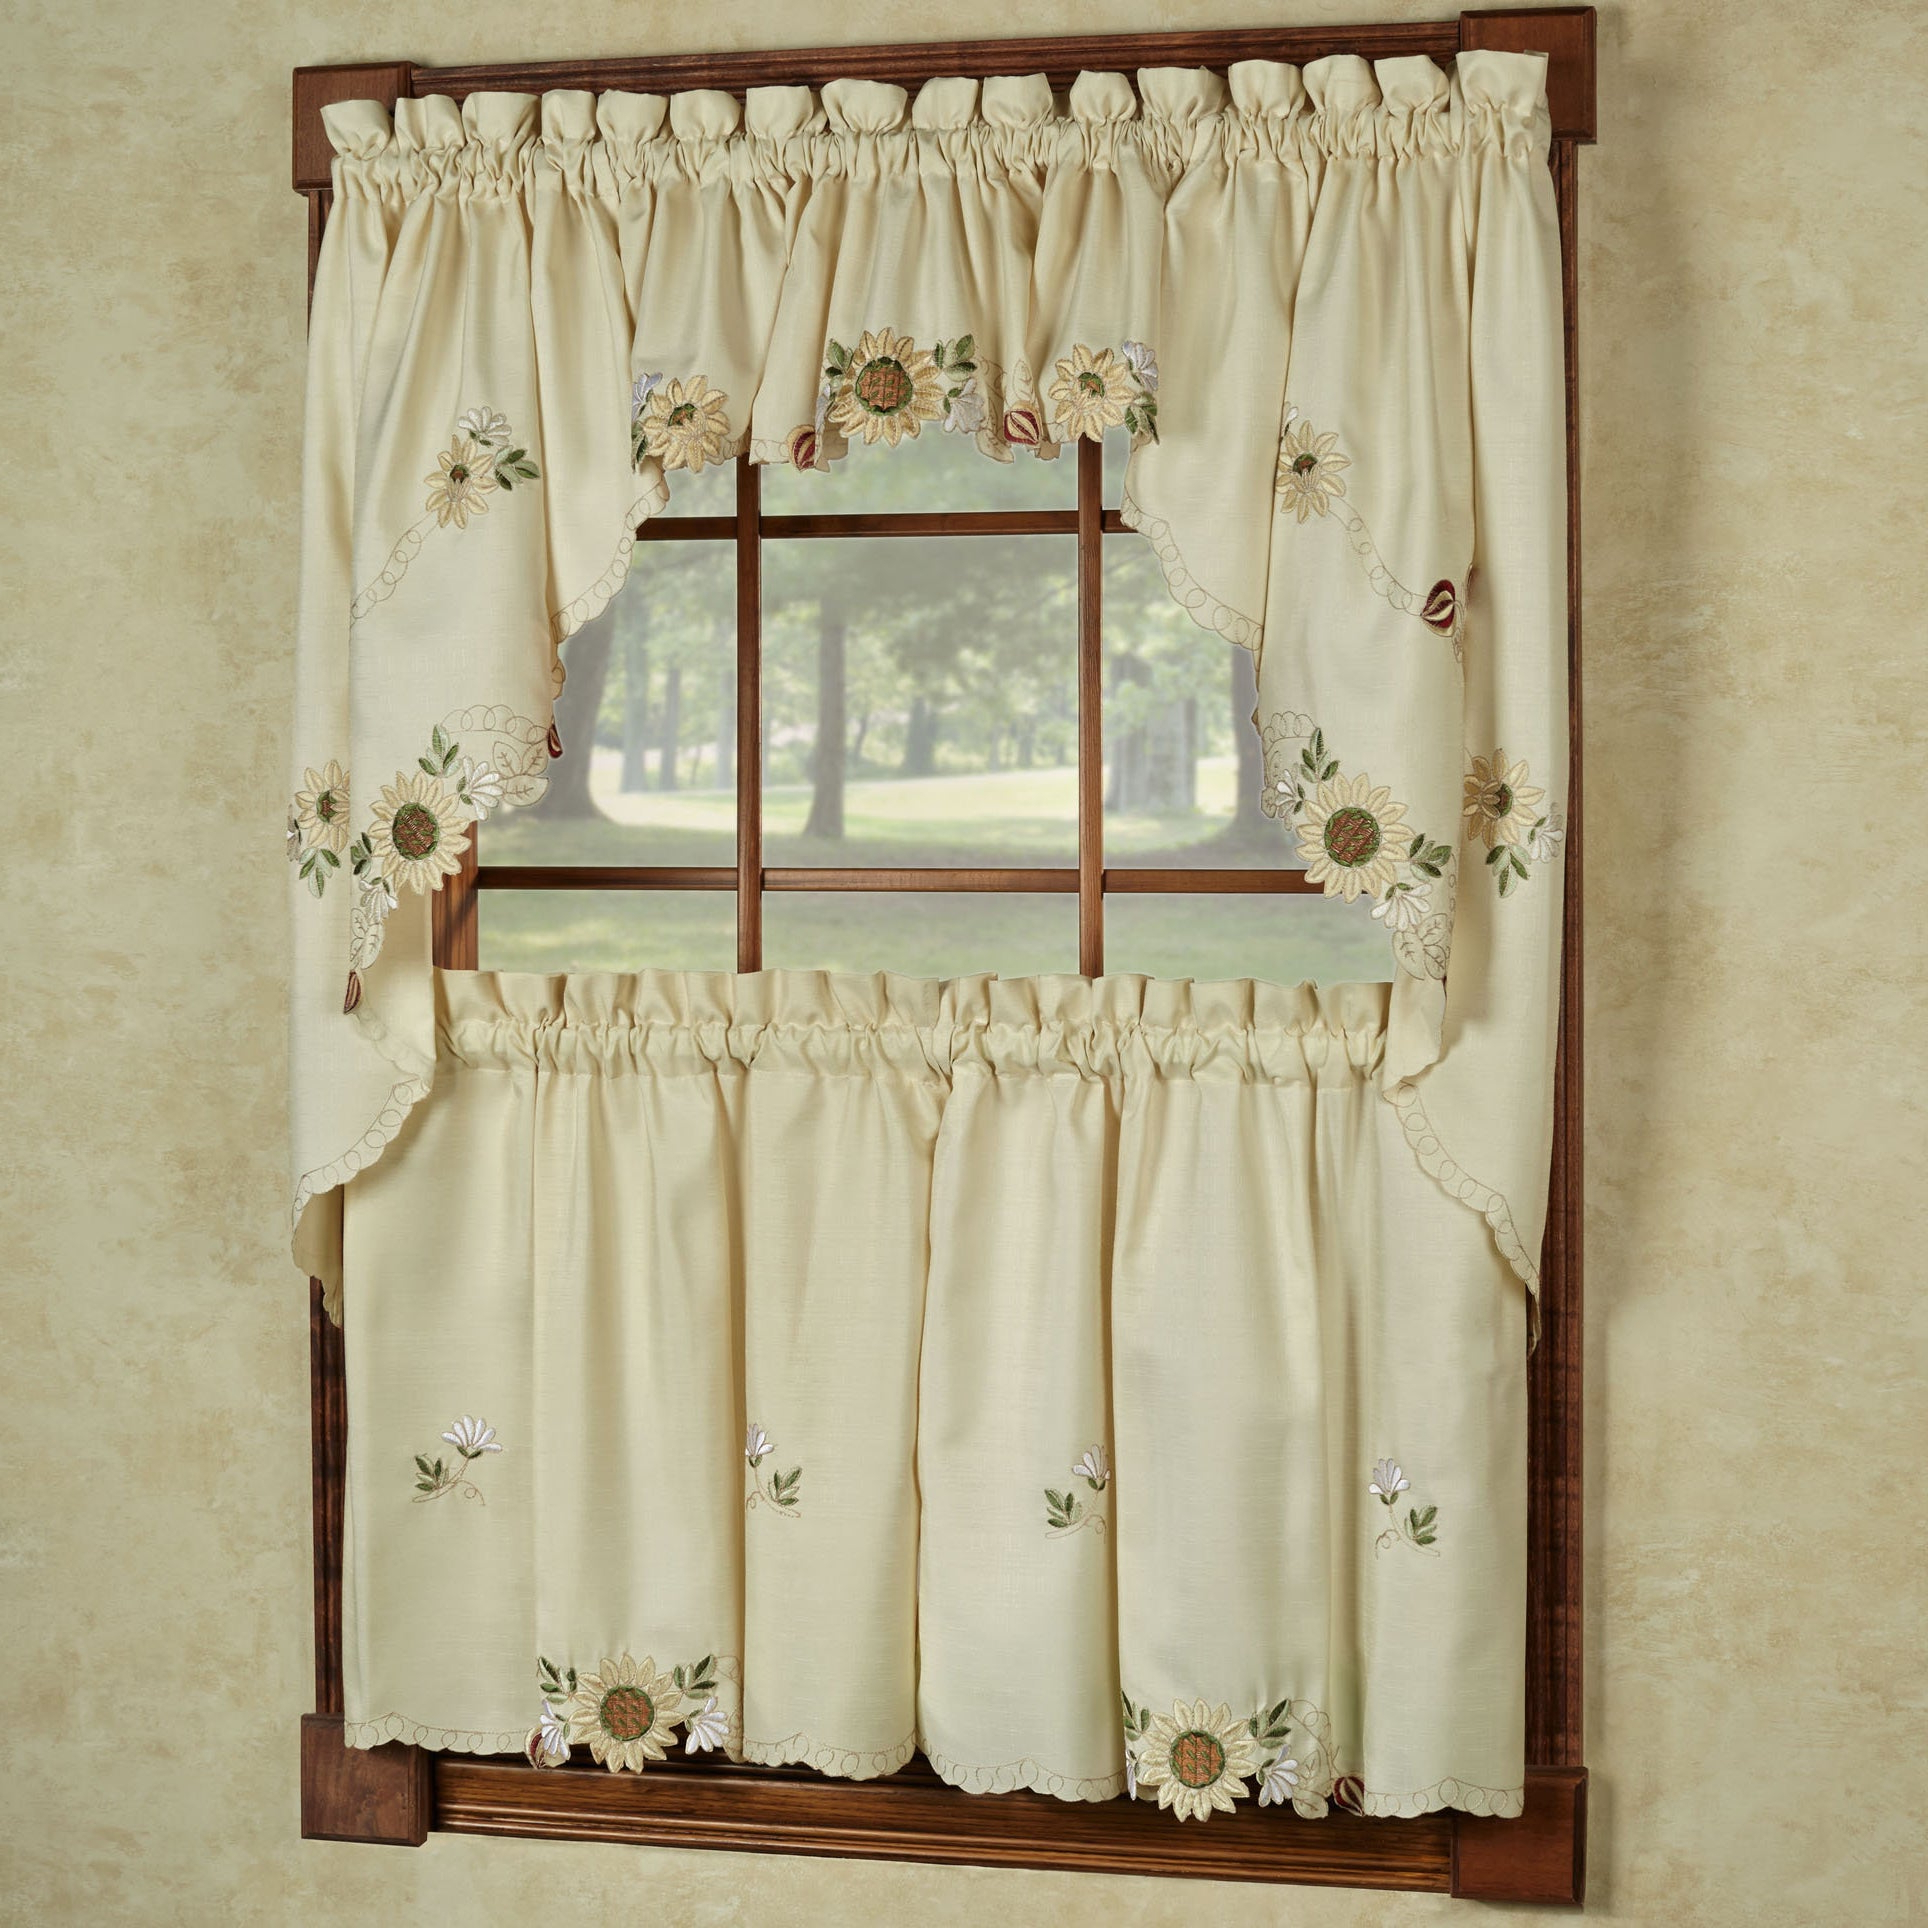 Overstock Shopping – The Best Deals On Valances Regarding Well Known Traditional Tailored Window Curtains With Embroidered Yellow Sunflowers (View 4 of 20)